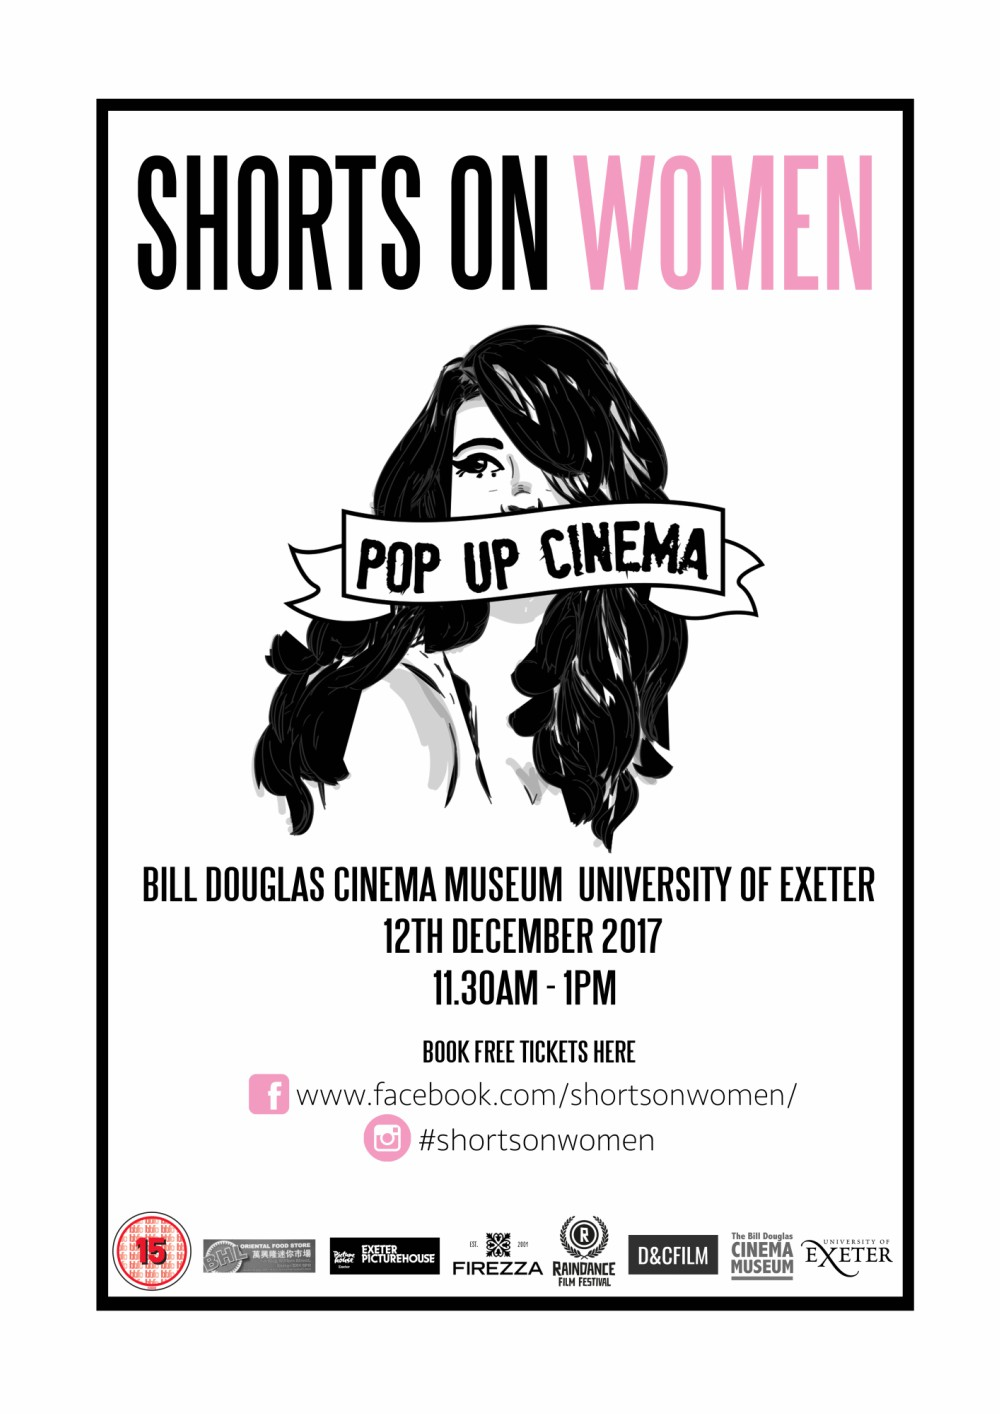 Shorts on Women, free pop-up cinema at Bill Douglas Museum, Exeter